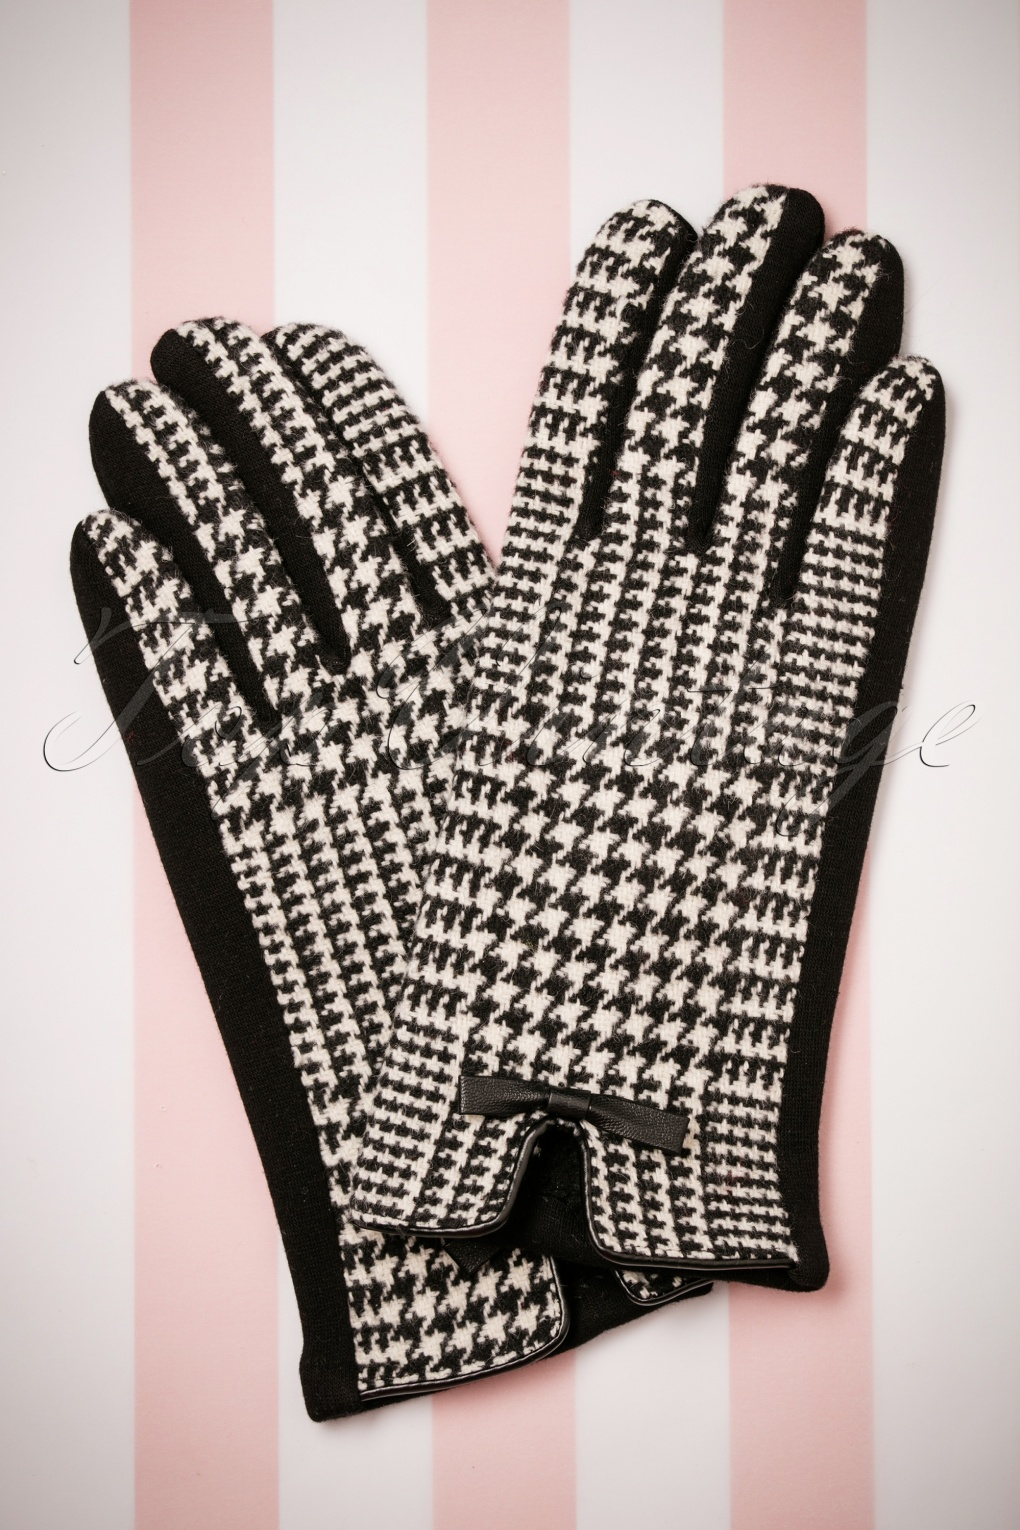 Vintage Style Gloves- Long, Wrist, Evening, Day, Leather, Lace 50s Houndstooth Gloves in Black and White £14.84 AT vintagedancer.com